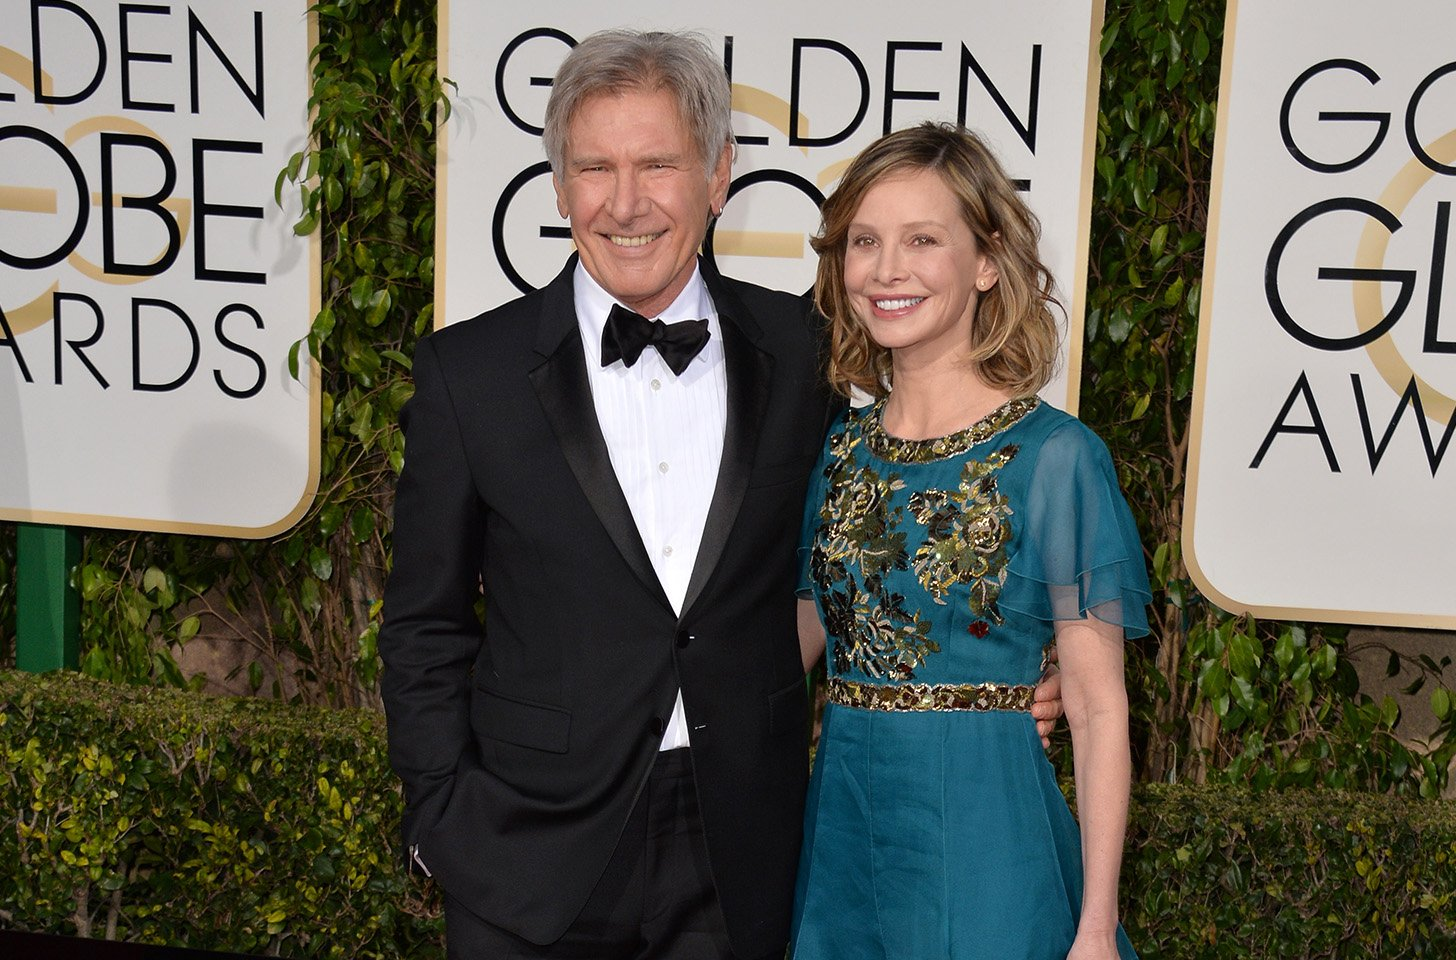 Reports Claim Harrison Ford's Marriage To Calista Flockhart Is On The Rocks